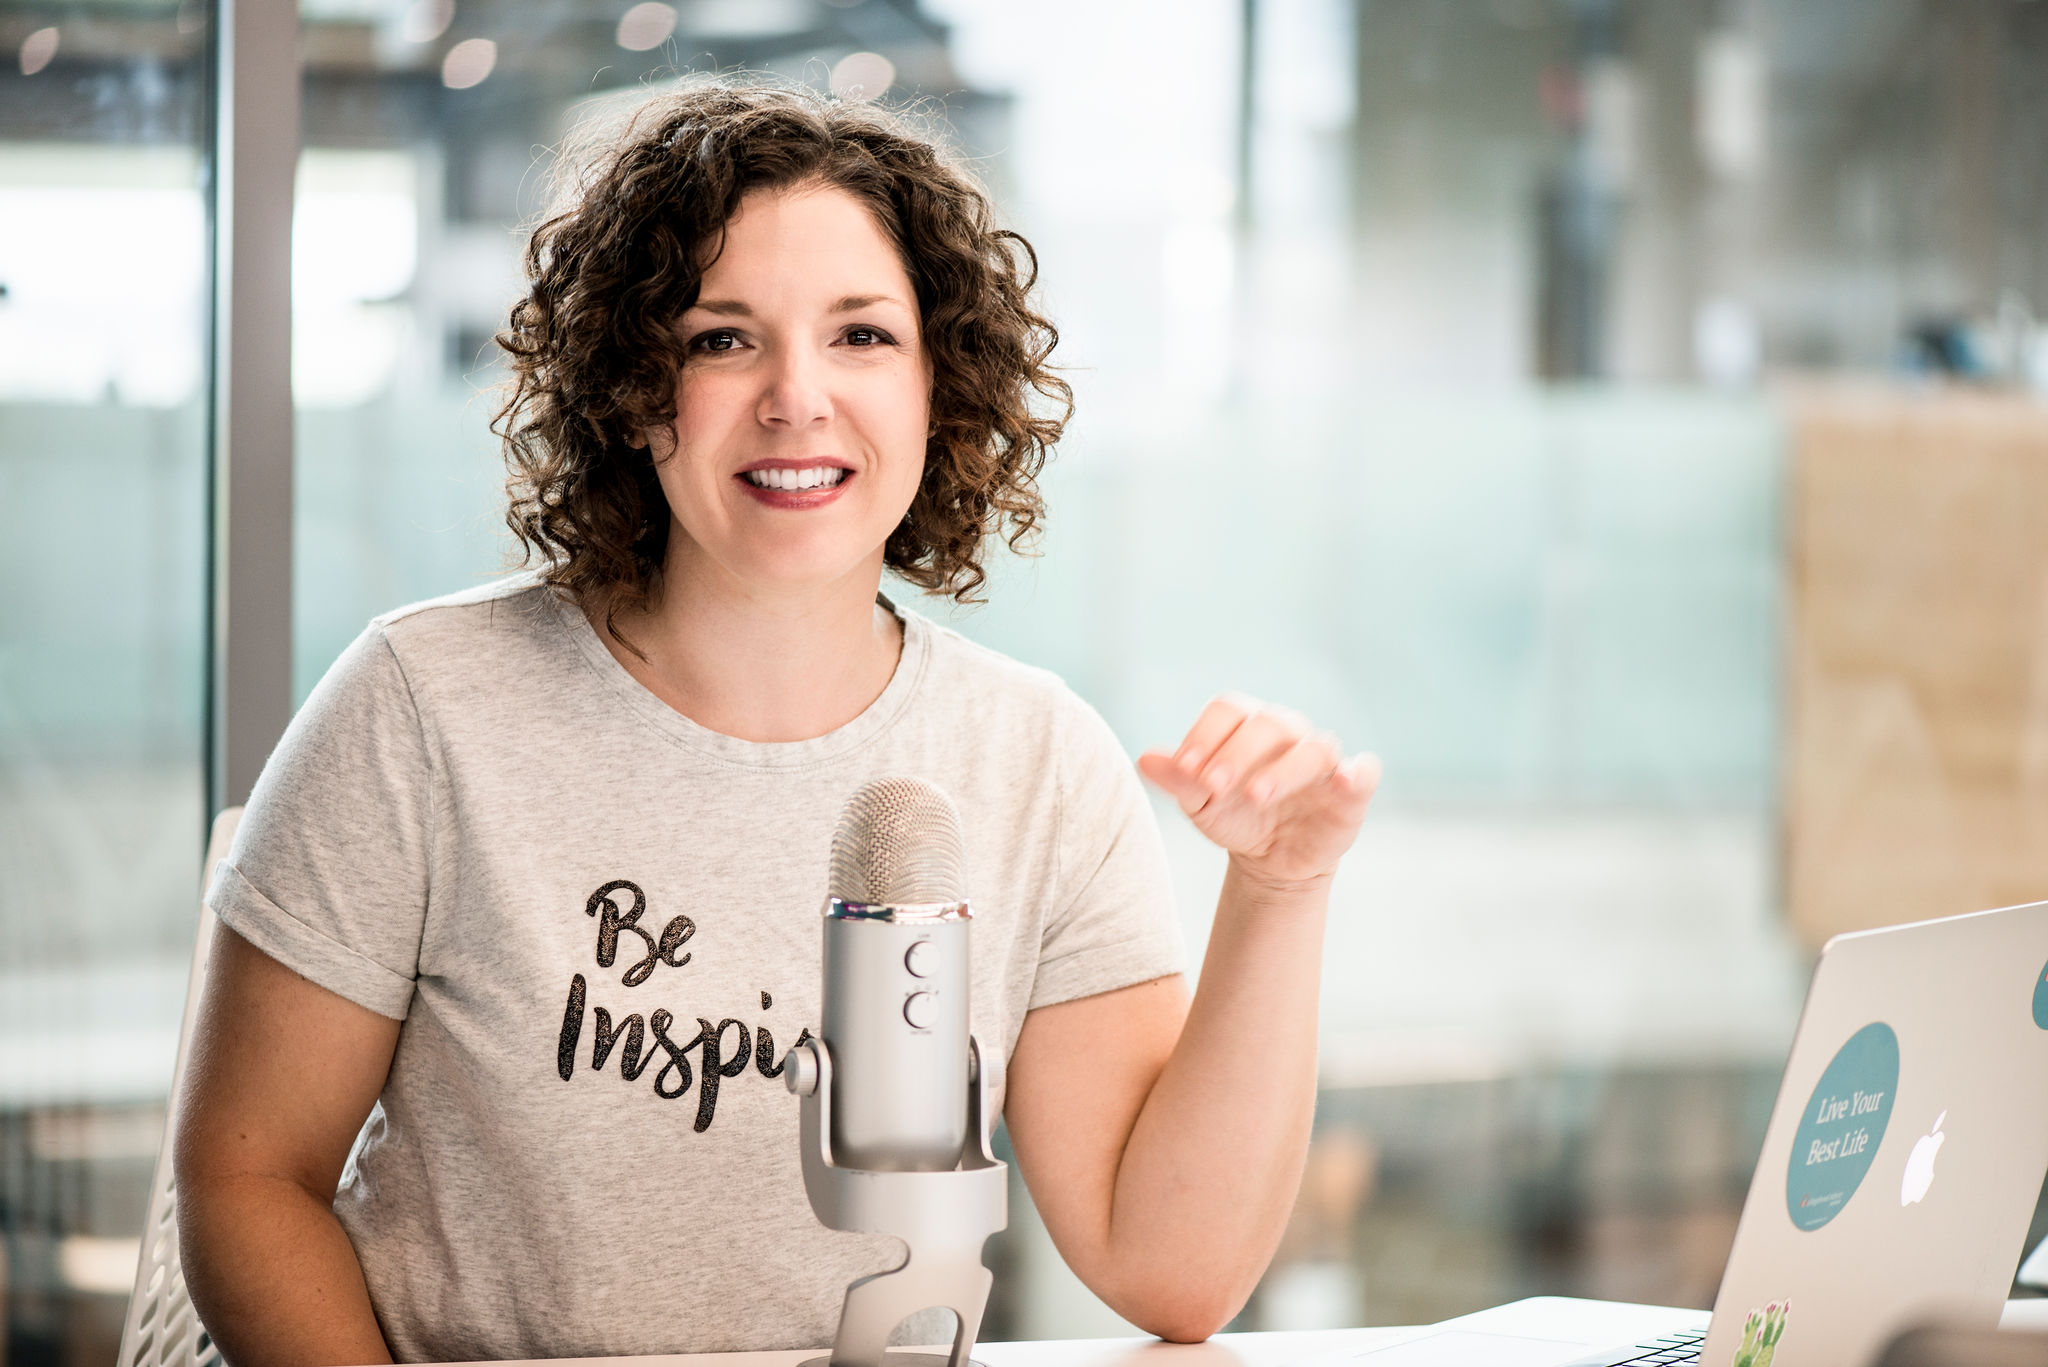 Image of host of the Collegehood Advice Podcast, Katy Oliveira, recording an episode.